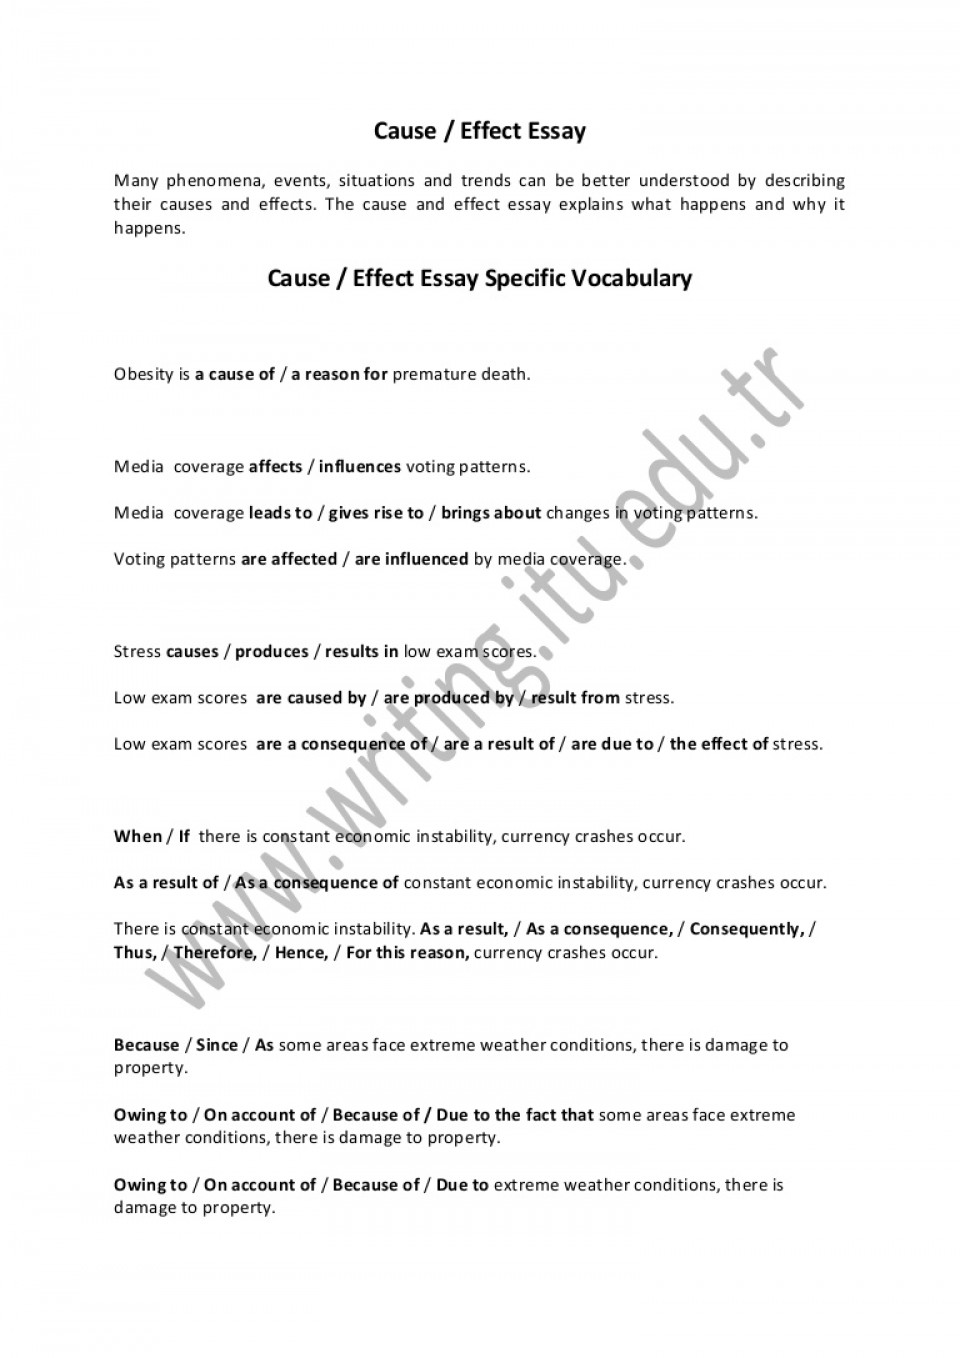 019 Essay Example Causeandeffectessay Thumbnail Cause And Effect Amazing Examples Writing Pdf On Stress 960